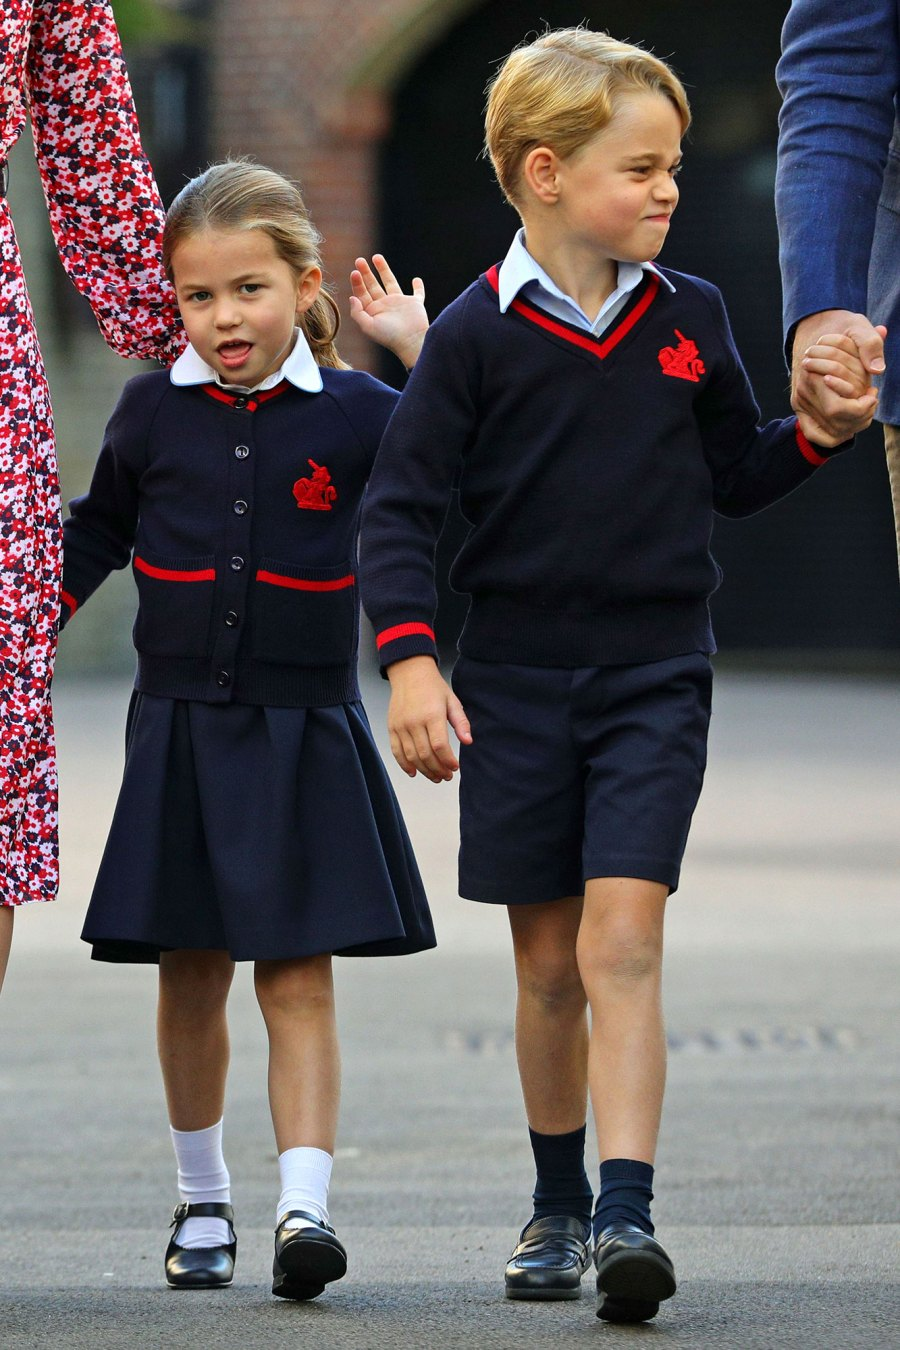 Princess Charlotte First Day of School With Prince George